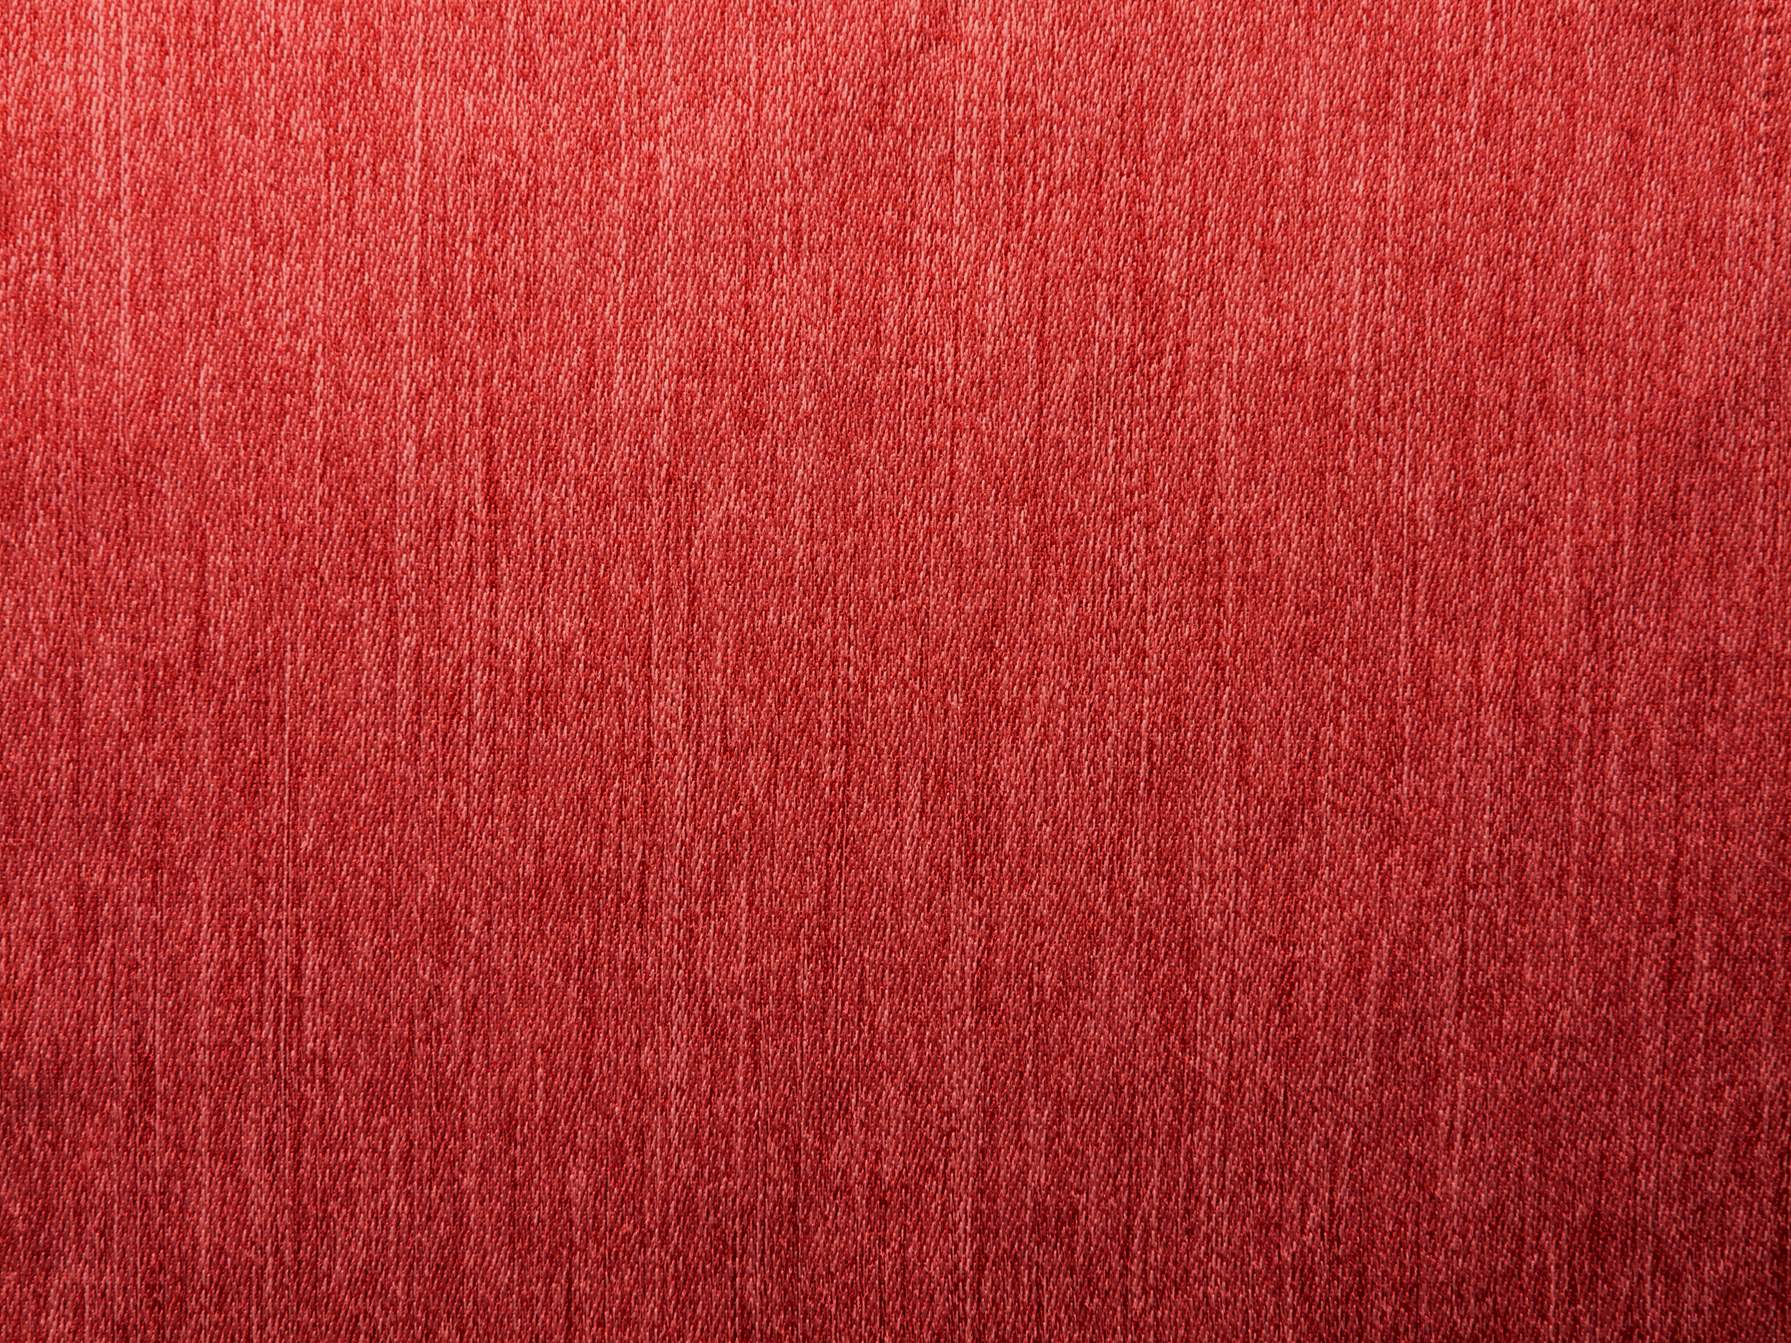 Red canvas texture background photohdx for Textures and backgrounds